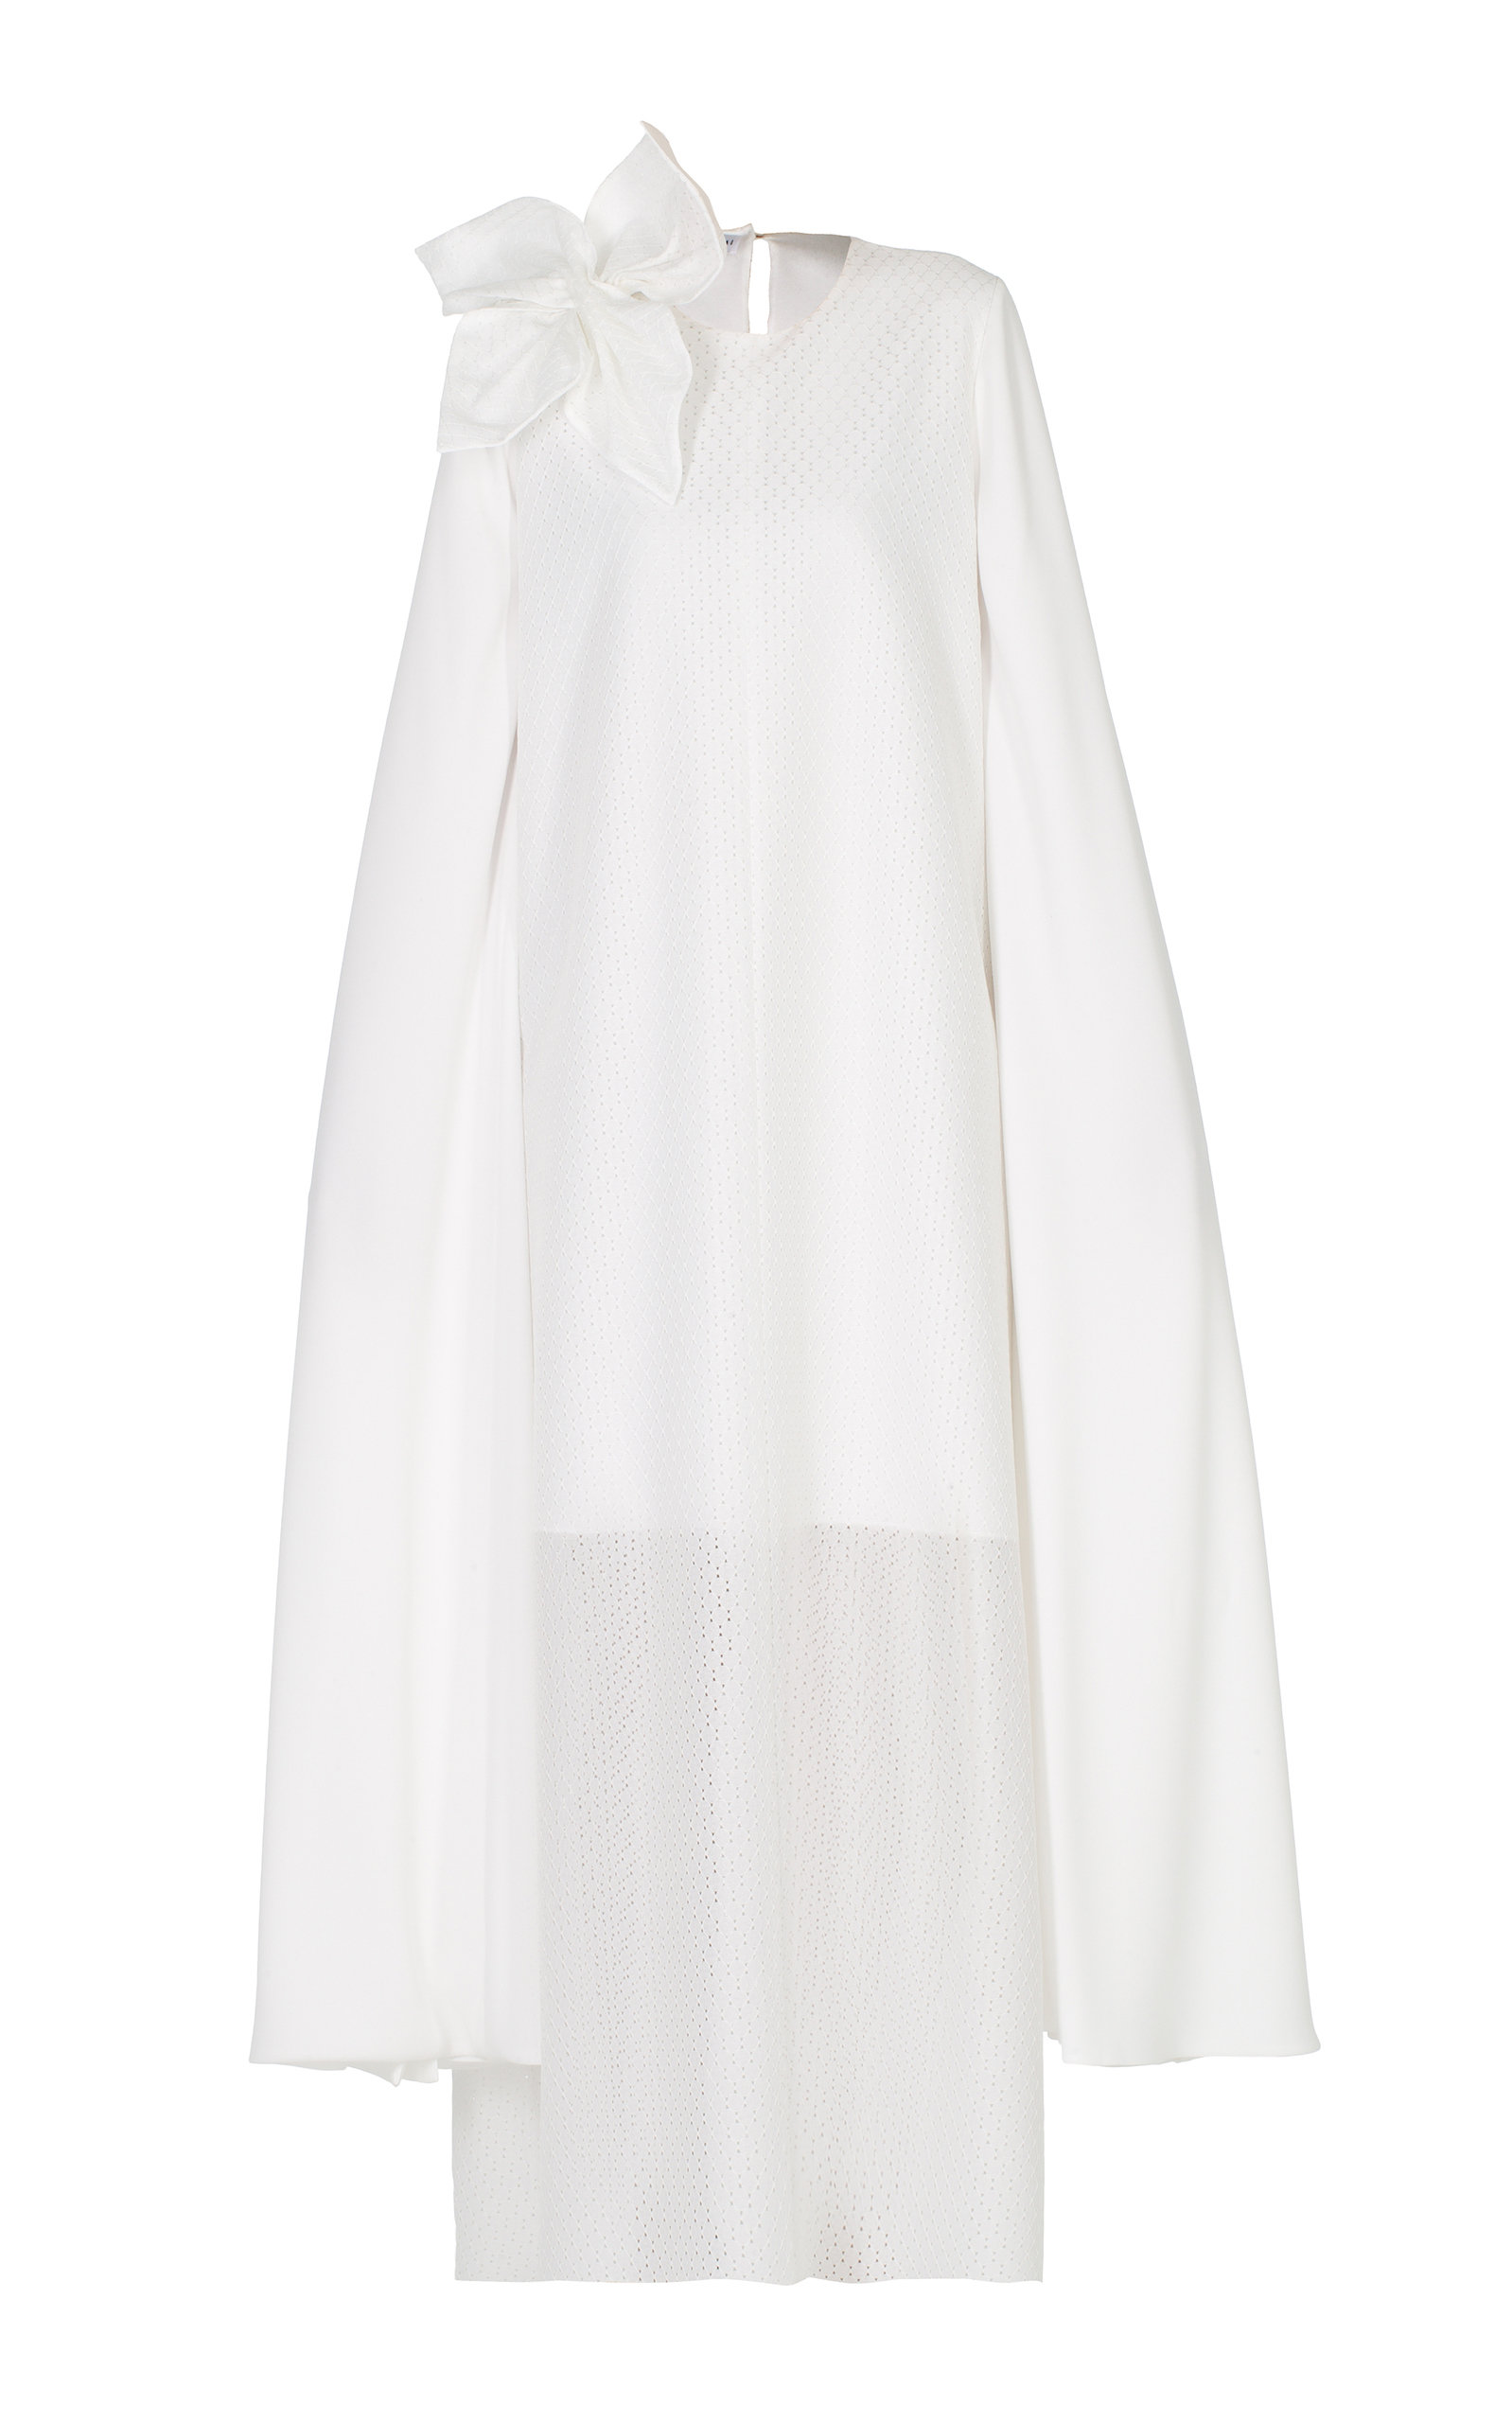 ANATOMI Lattice Lace Dress With Petal Detail in White